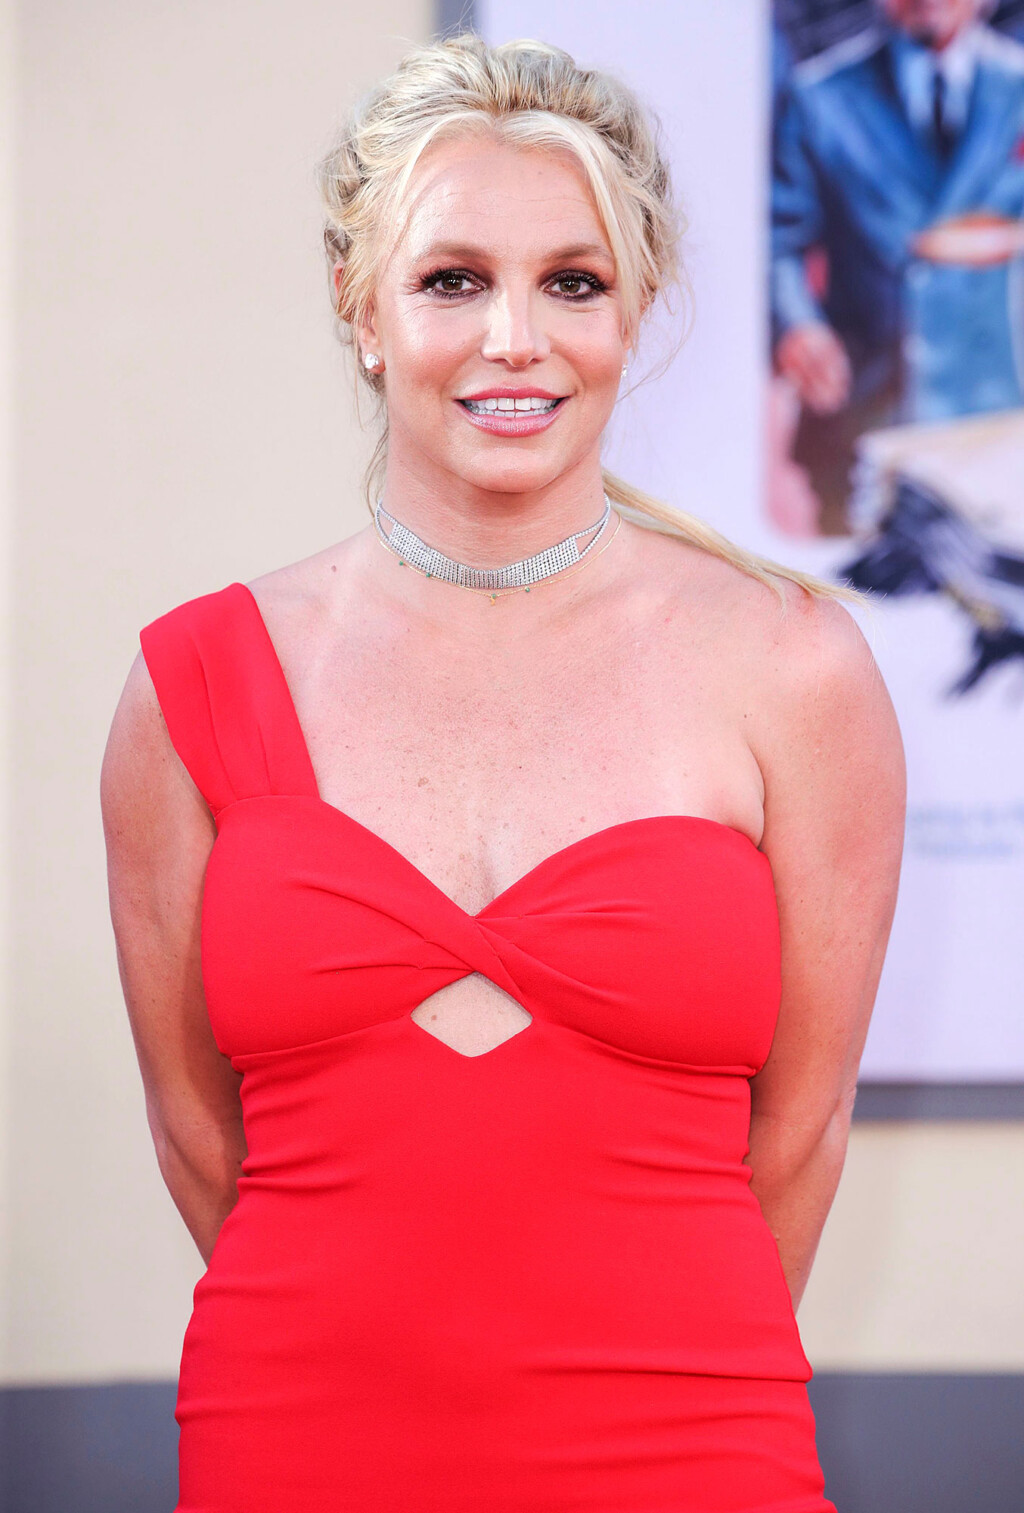 Britney Spears Reacts Documentary About Her Life I Cried Two Weeks 002